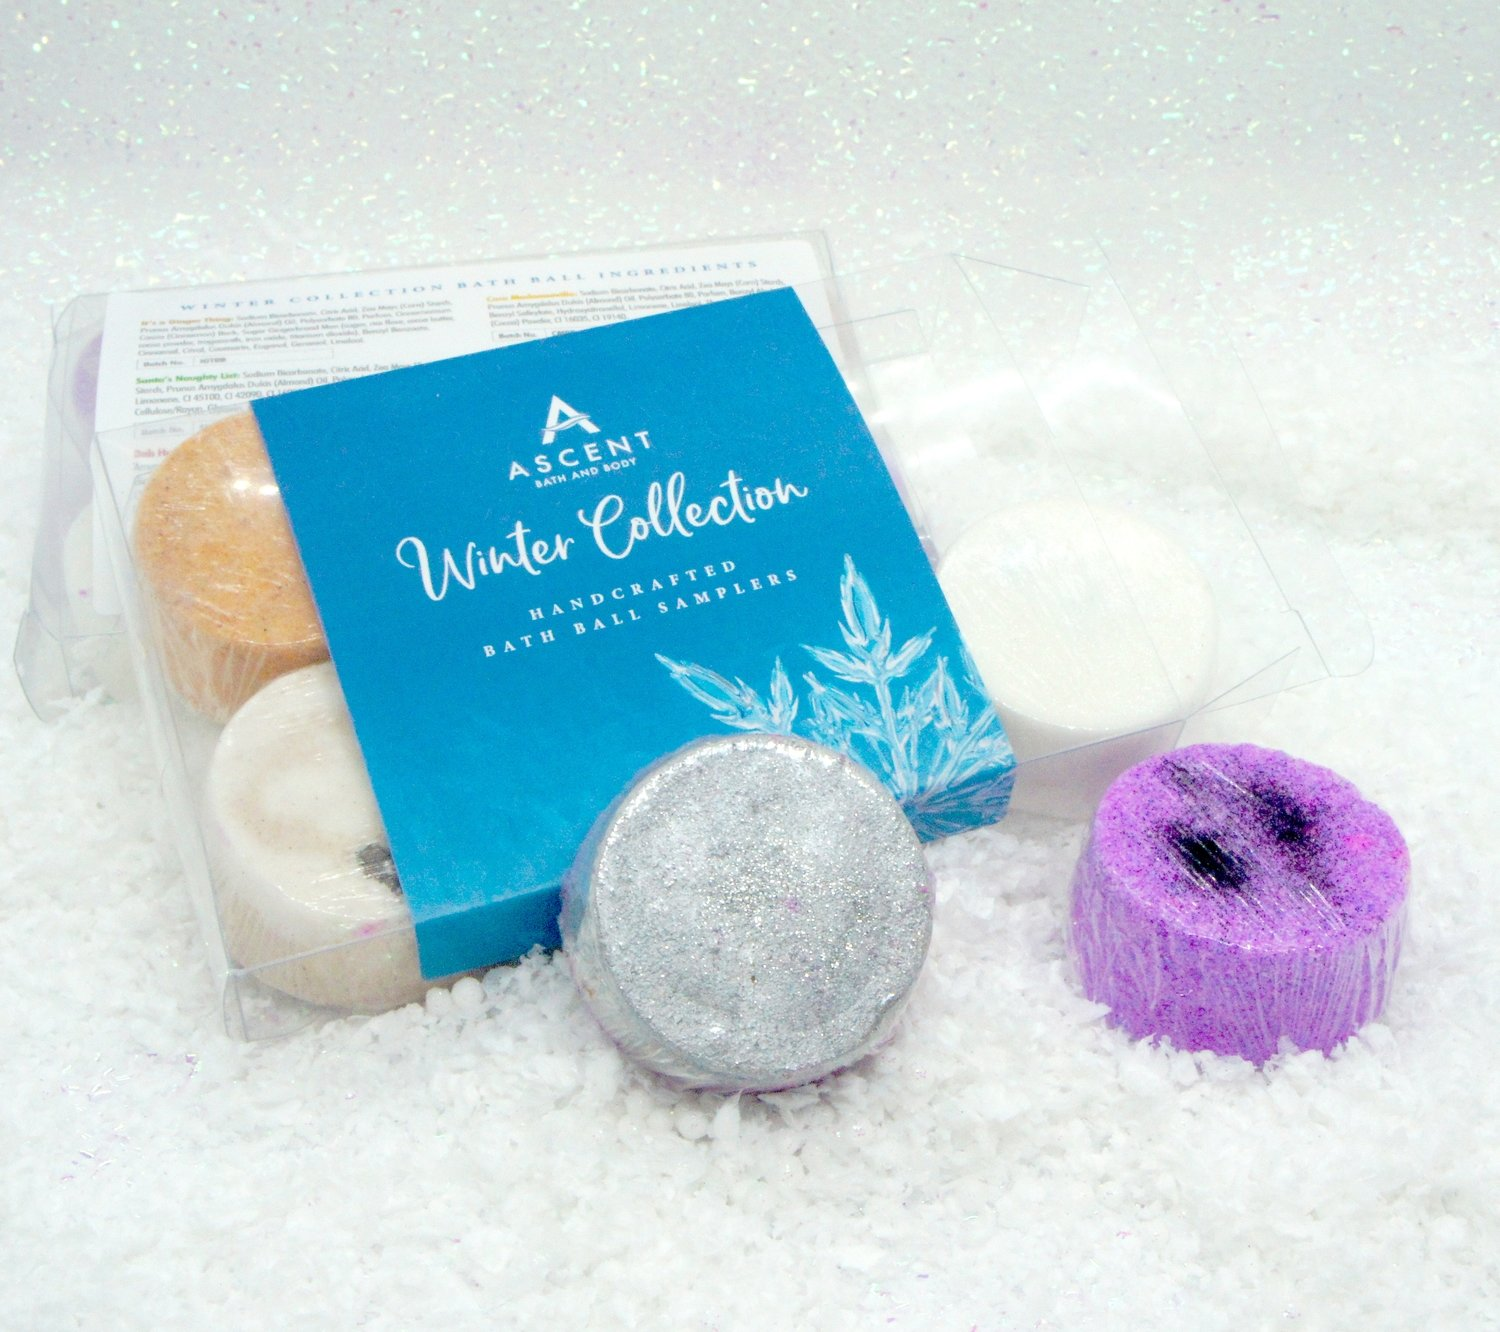 The Winter Collection Mini Bath Bomb Pack